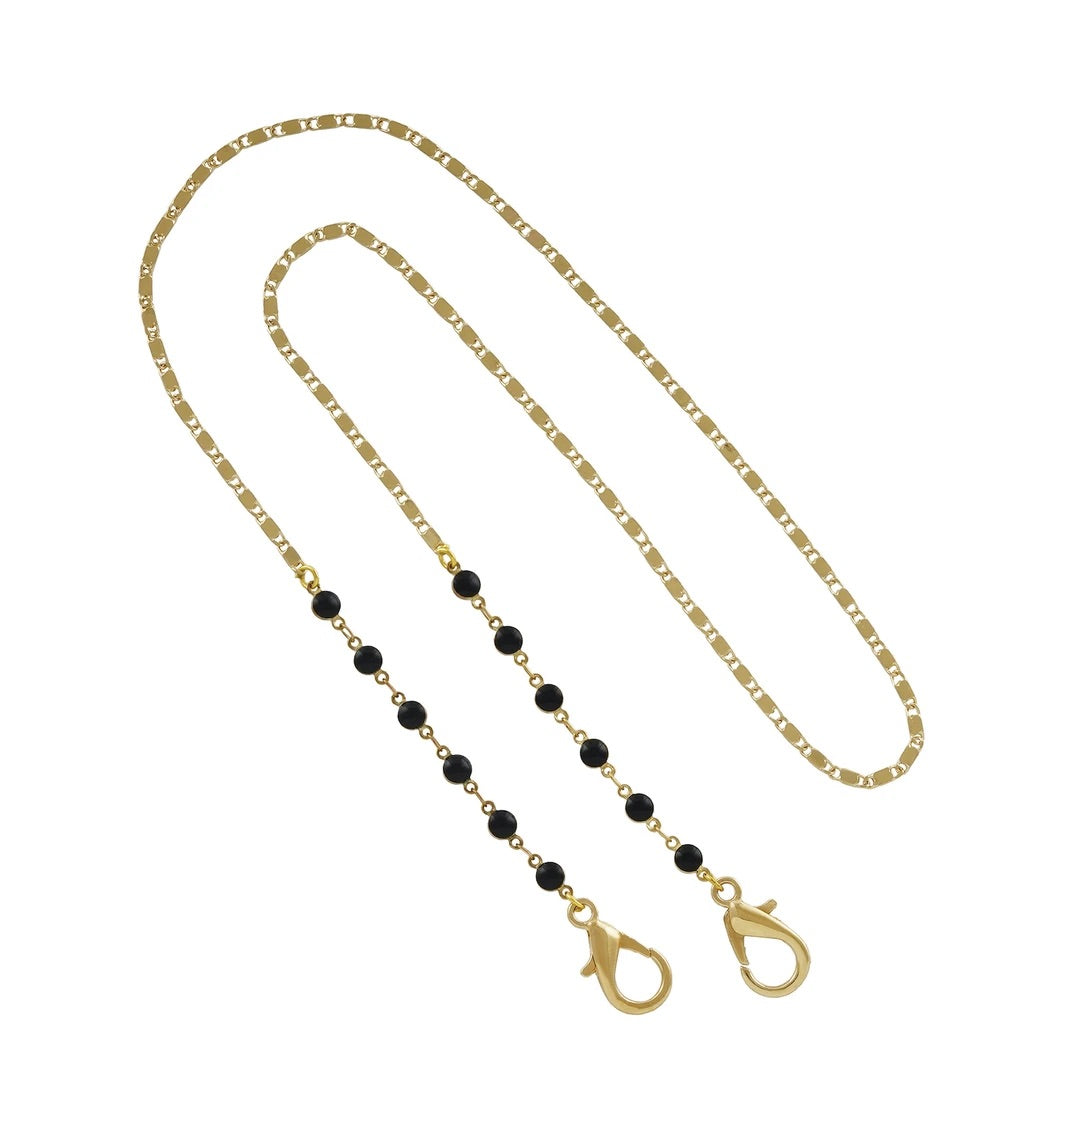 Gold Chain with Black Beads (Large)